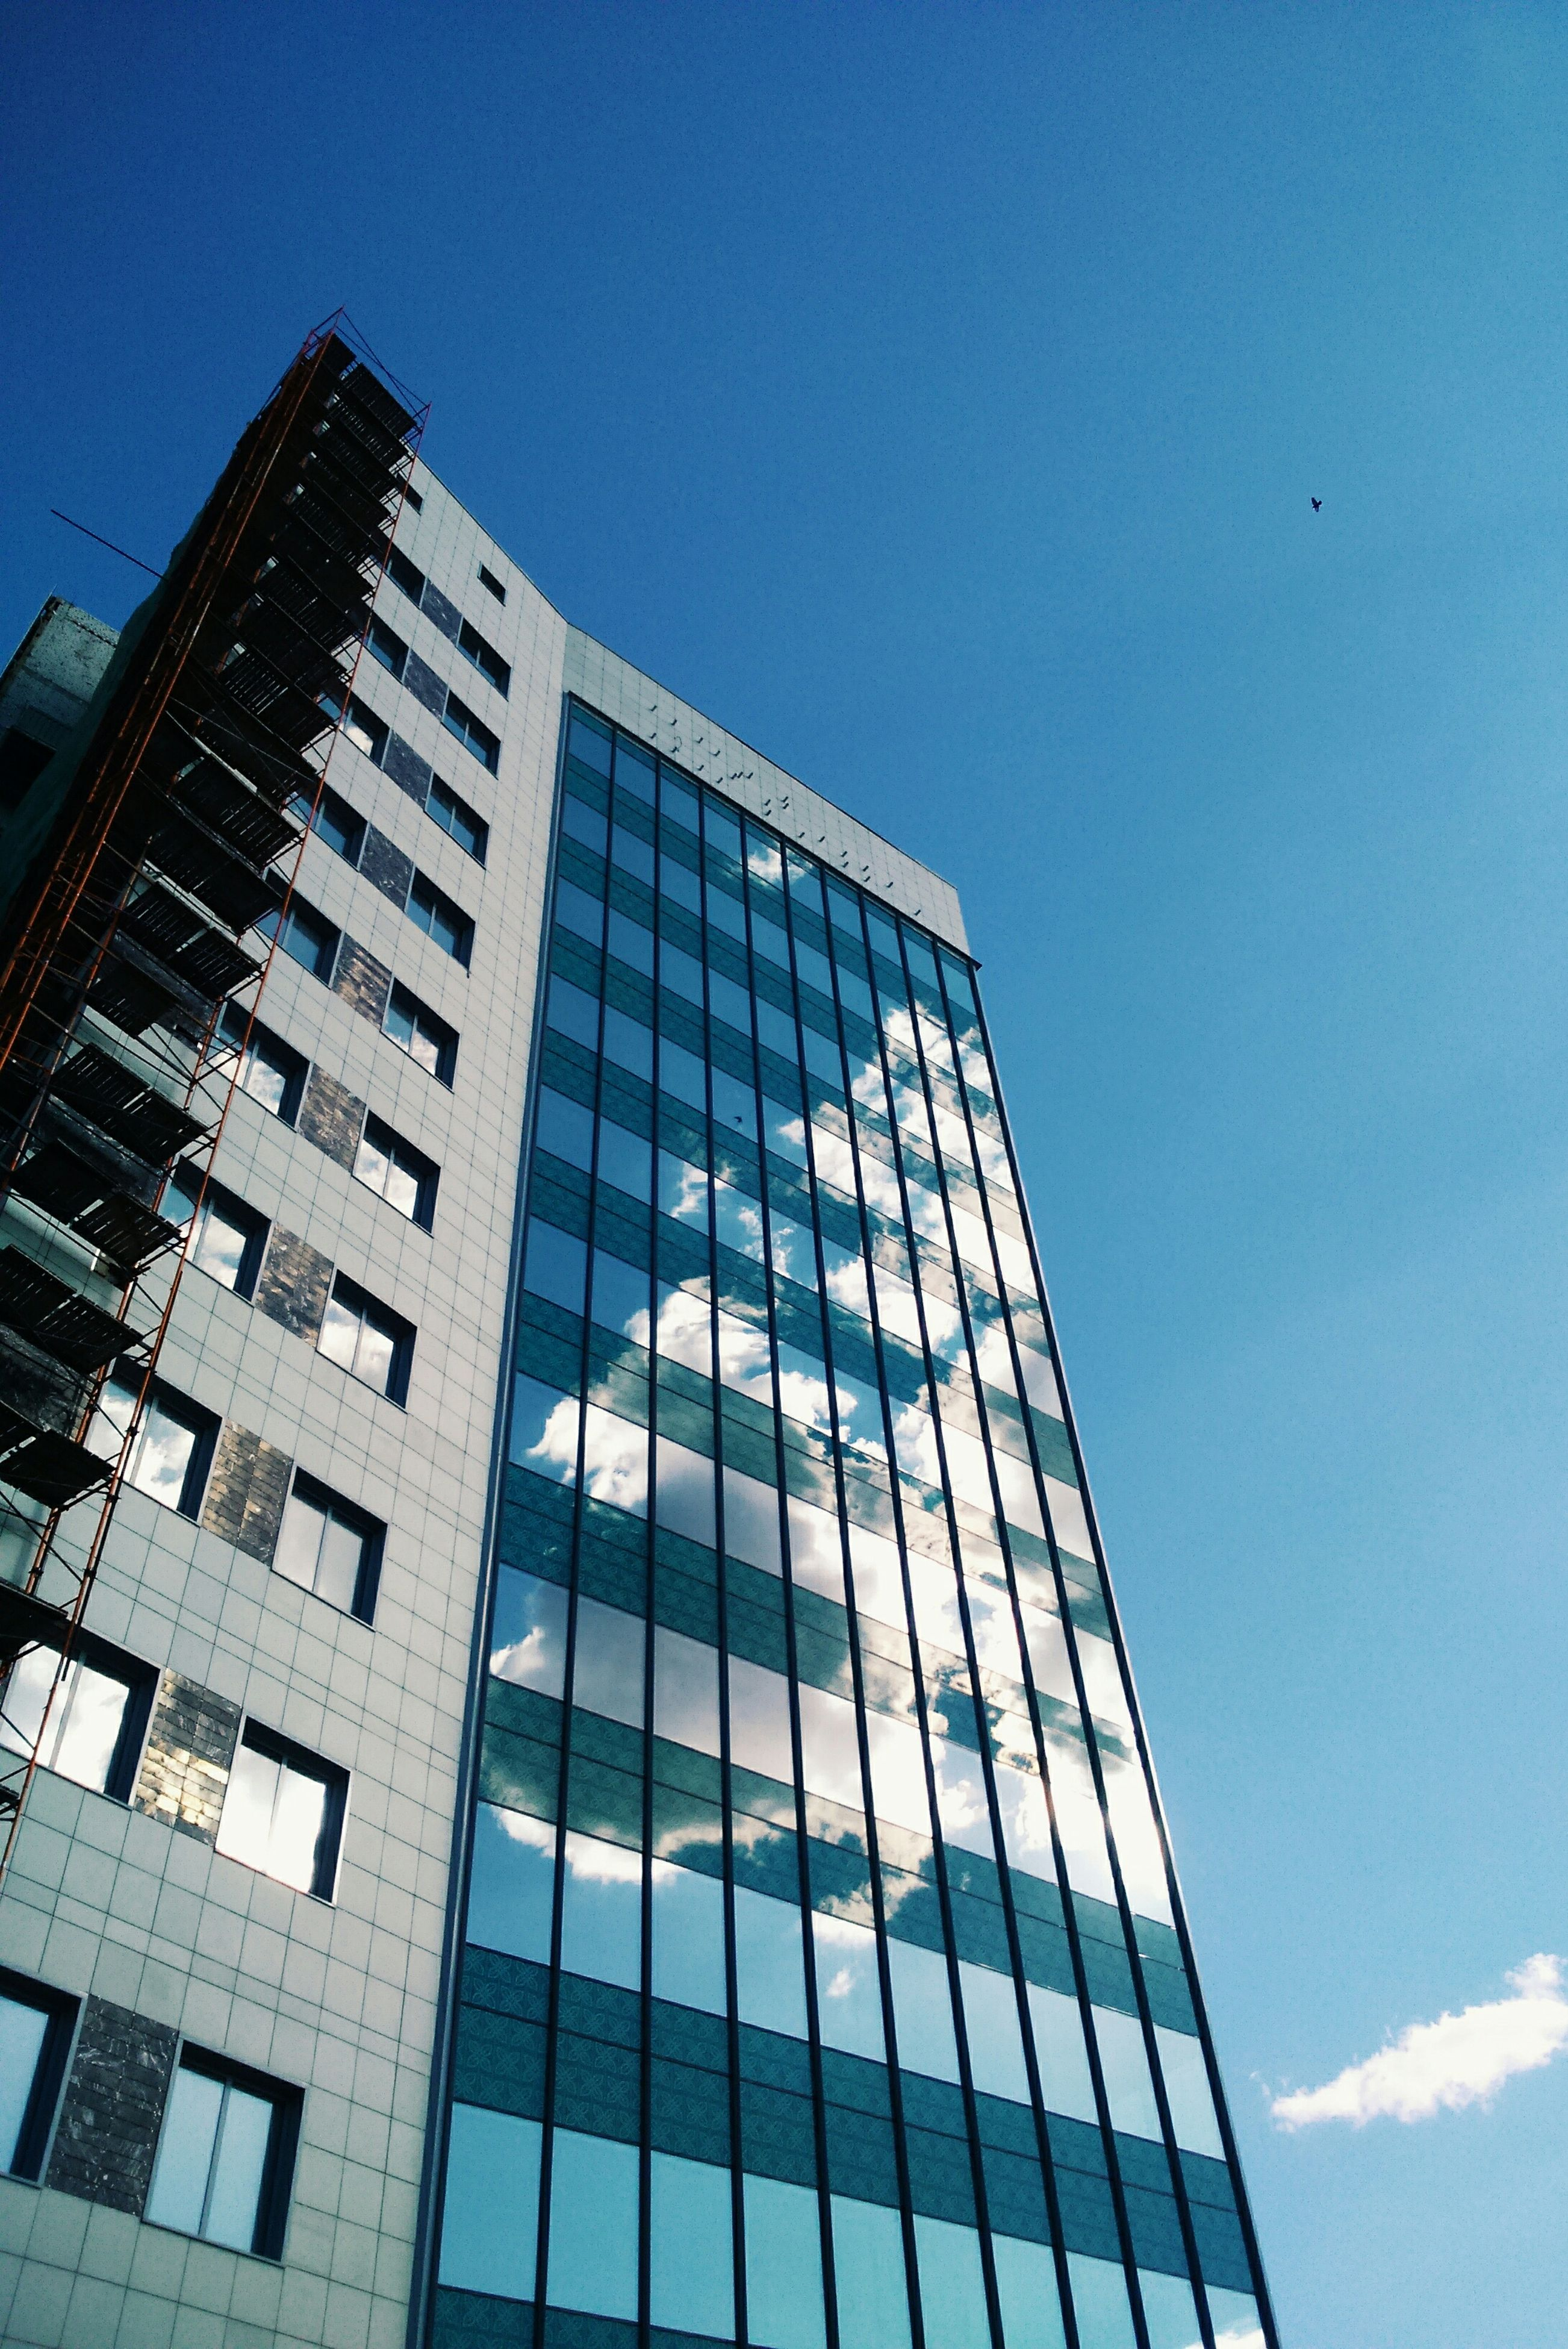 low angle view, architecture, building exterior, built structure, modern, office building, blue, city, glass - material, clear sky, skyscraper, building, tall - high, reflection, tower, sky, window, day, outdoors, no people